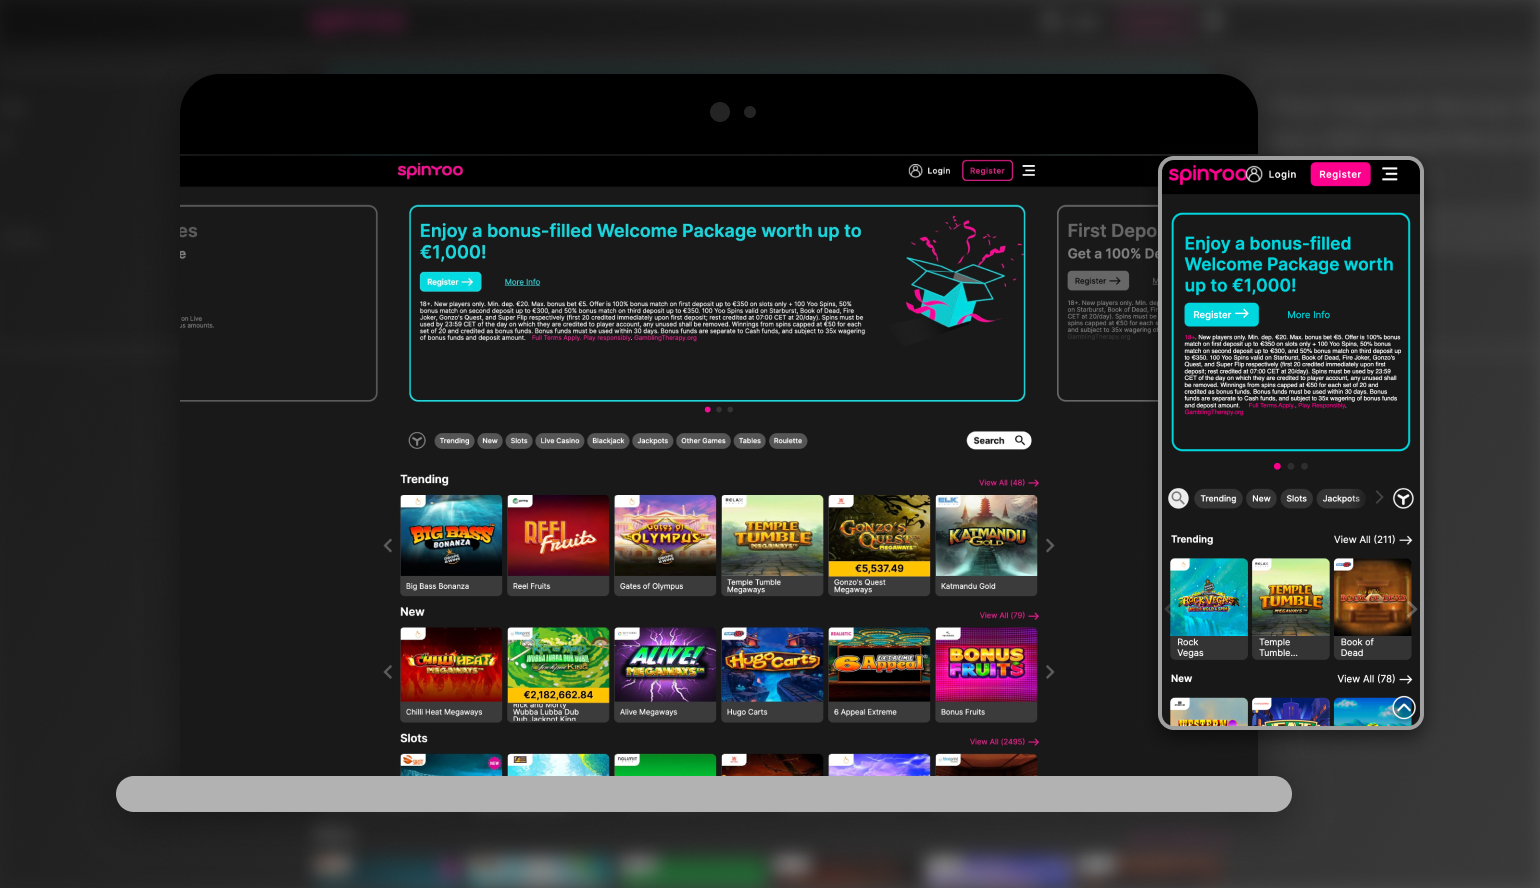 Image showing SpinYoo Casino on mobile and desktop